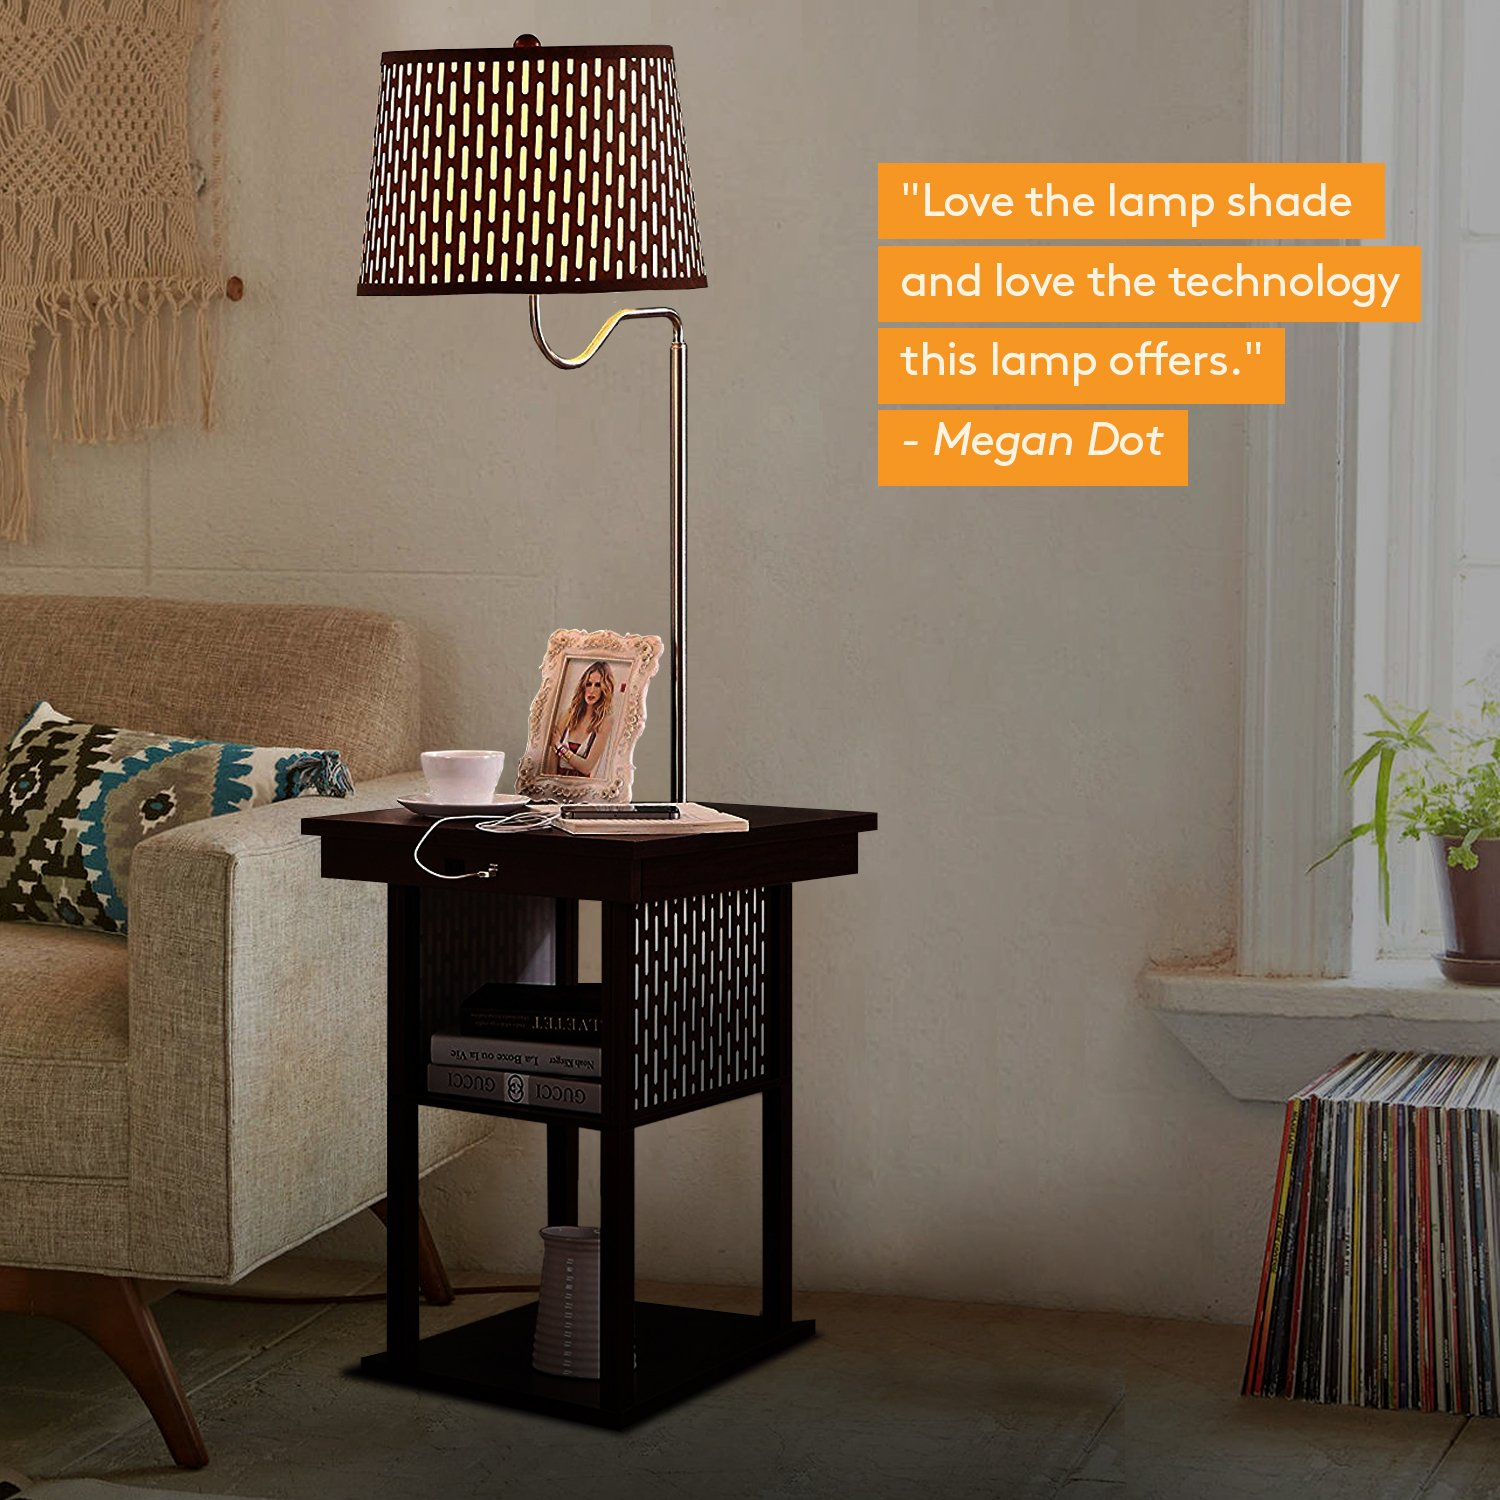 Brightech Madison - Mid Century Modern Nightstand, Shelves & USB Port Combination - Bedside Table with LED Floor Lamp Attached - End Table for Living Room Sofas - Brown by Brightech (Image #10)